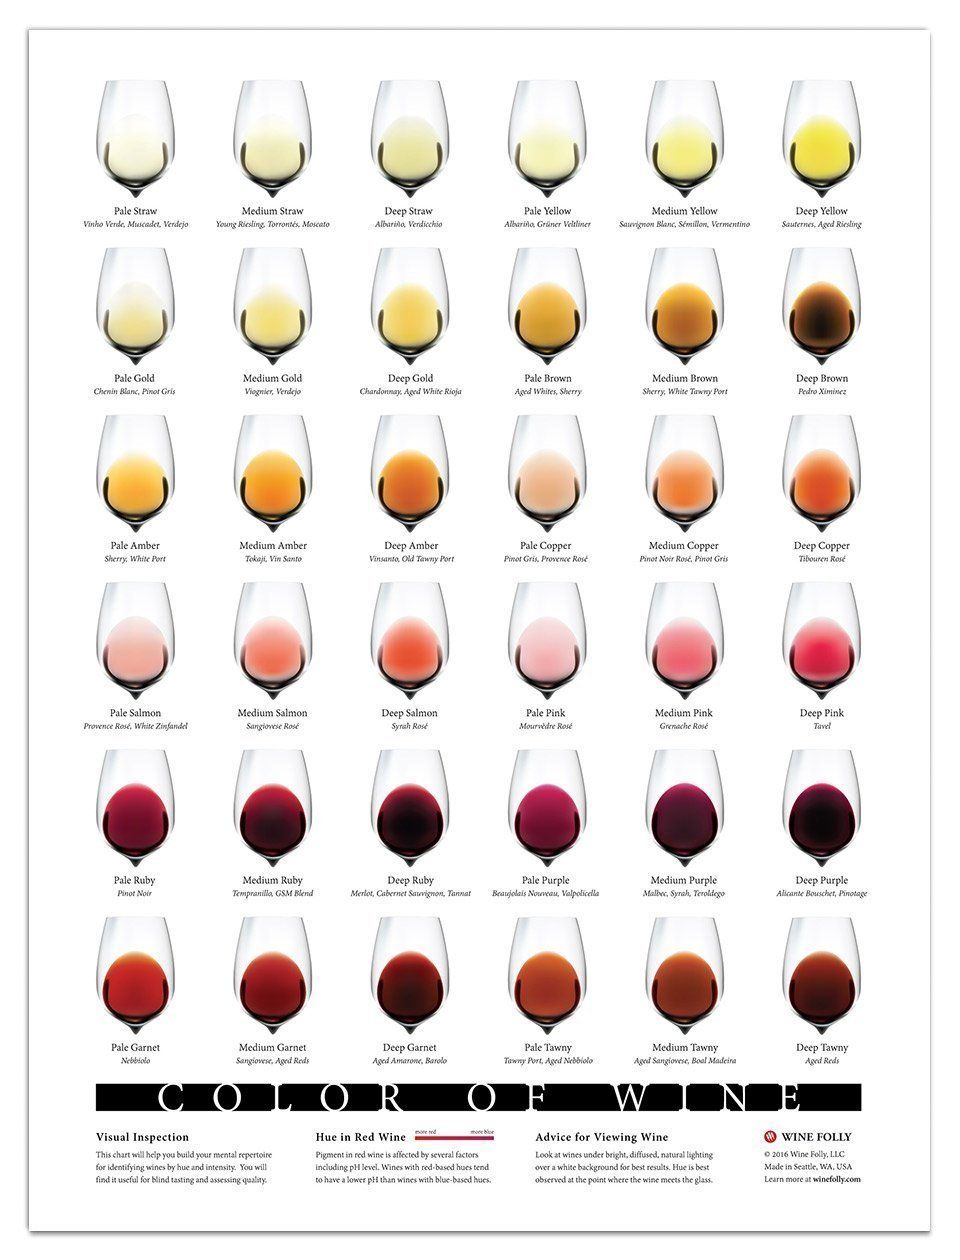 Amazon.com: Wine Folly Color of Wine Poster Print (18